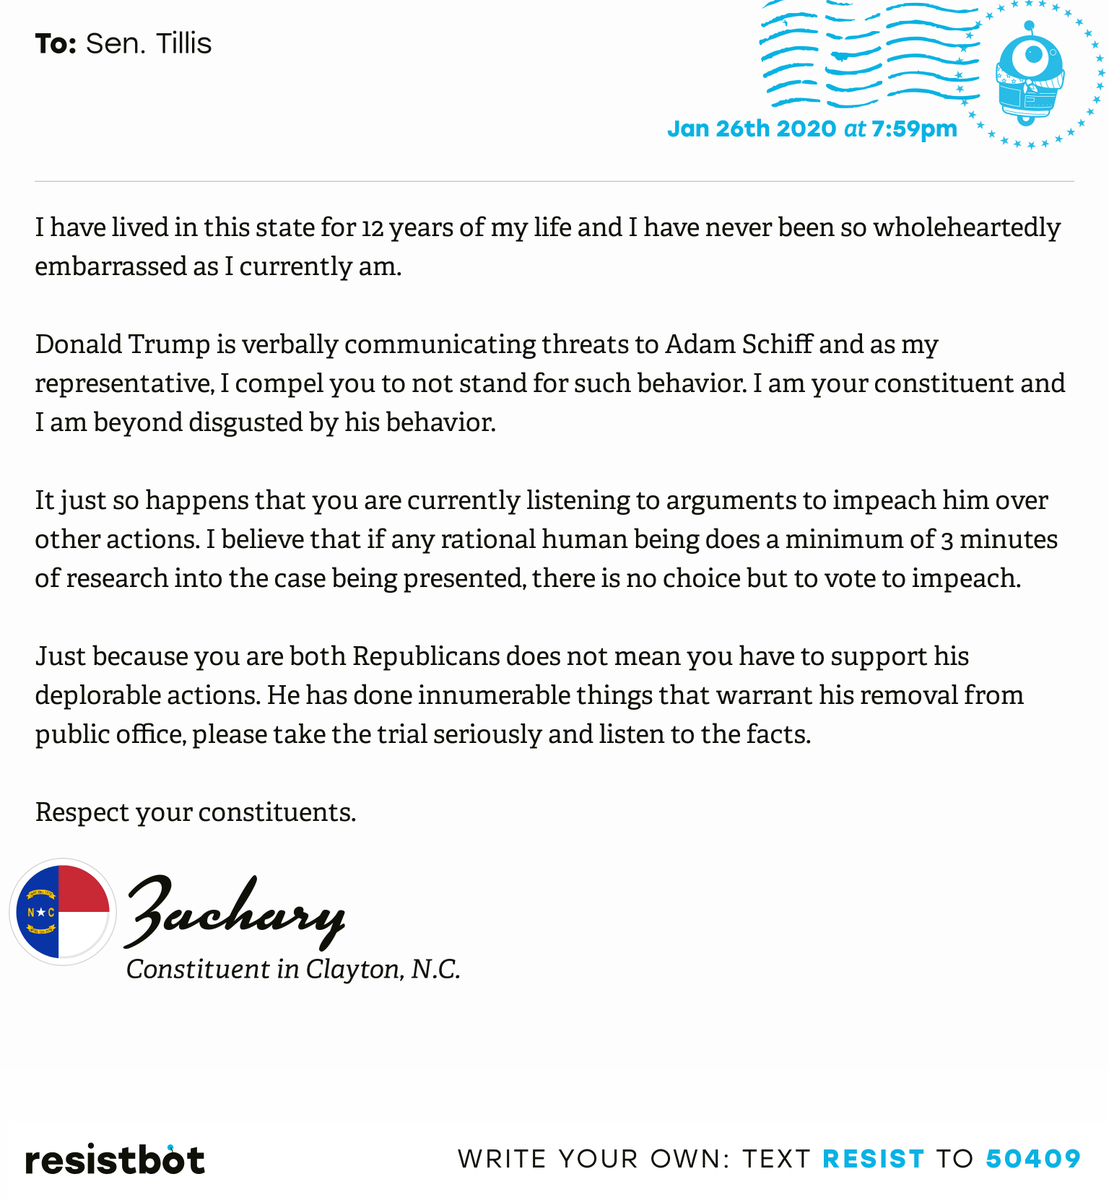 I just delivered this letter from Zachary in Clayton, N.C. to @senthomtillis #NC02 #NCpolitics #ImpeachmentInquiry